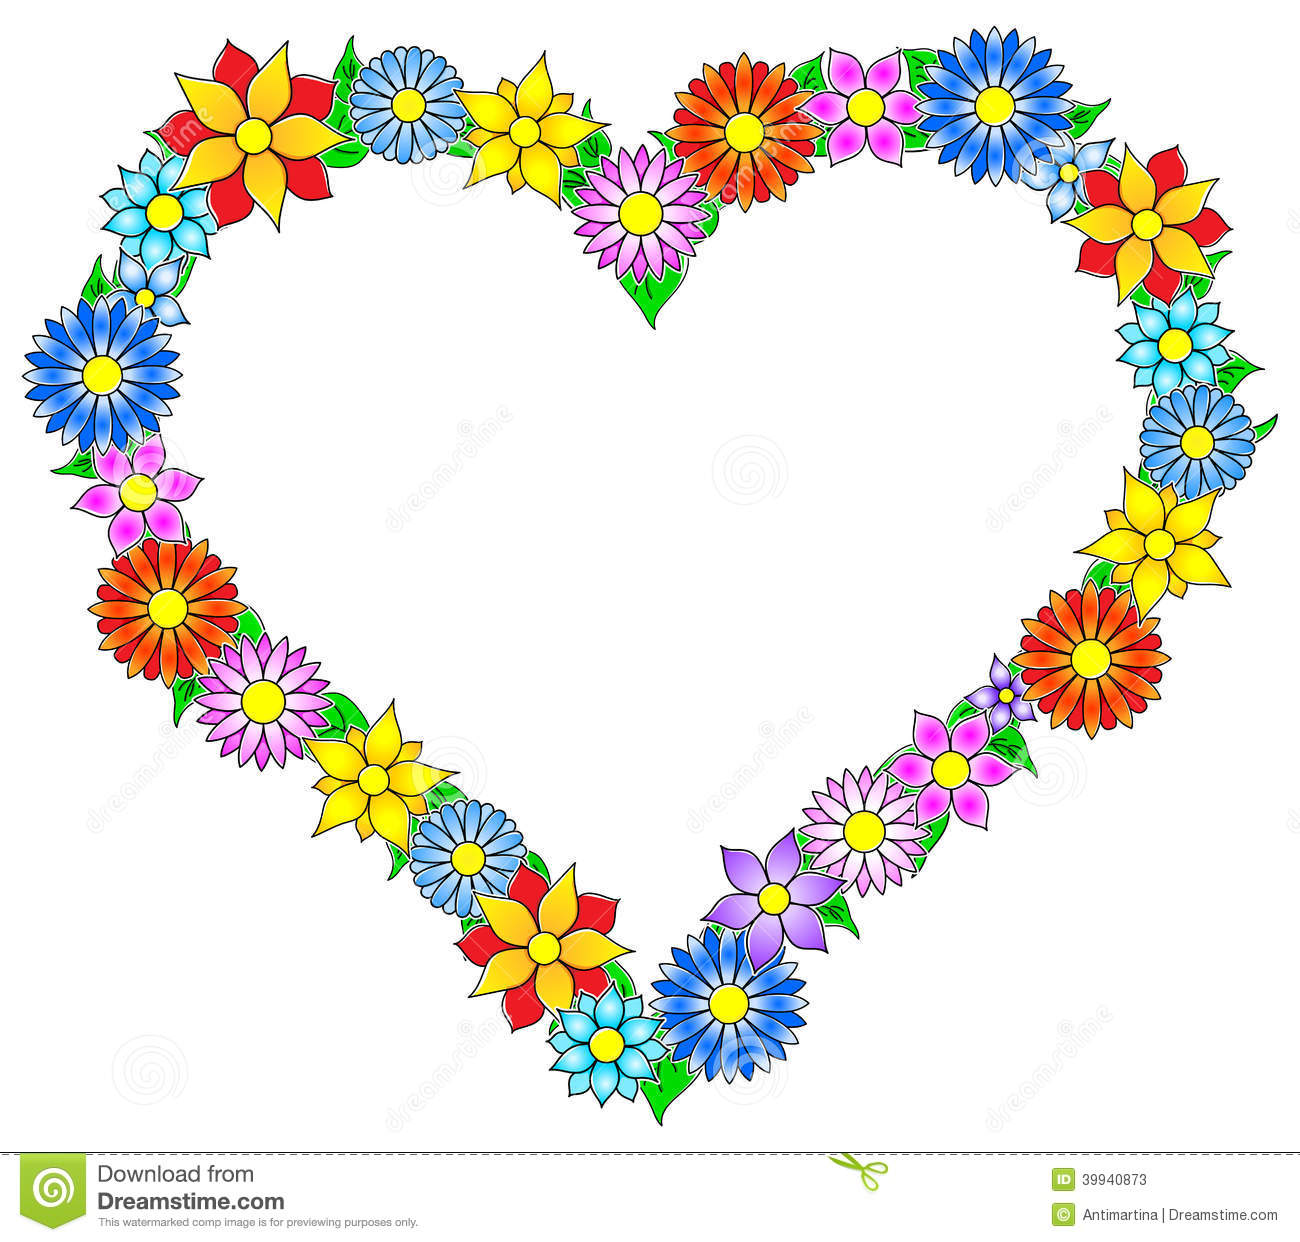 Clipart Of Hearts And Flowers at GetDrawings | Free download